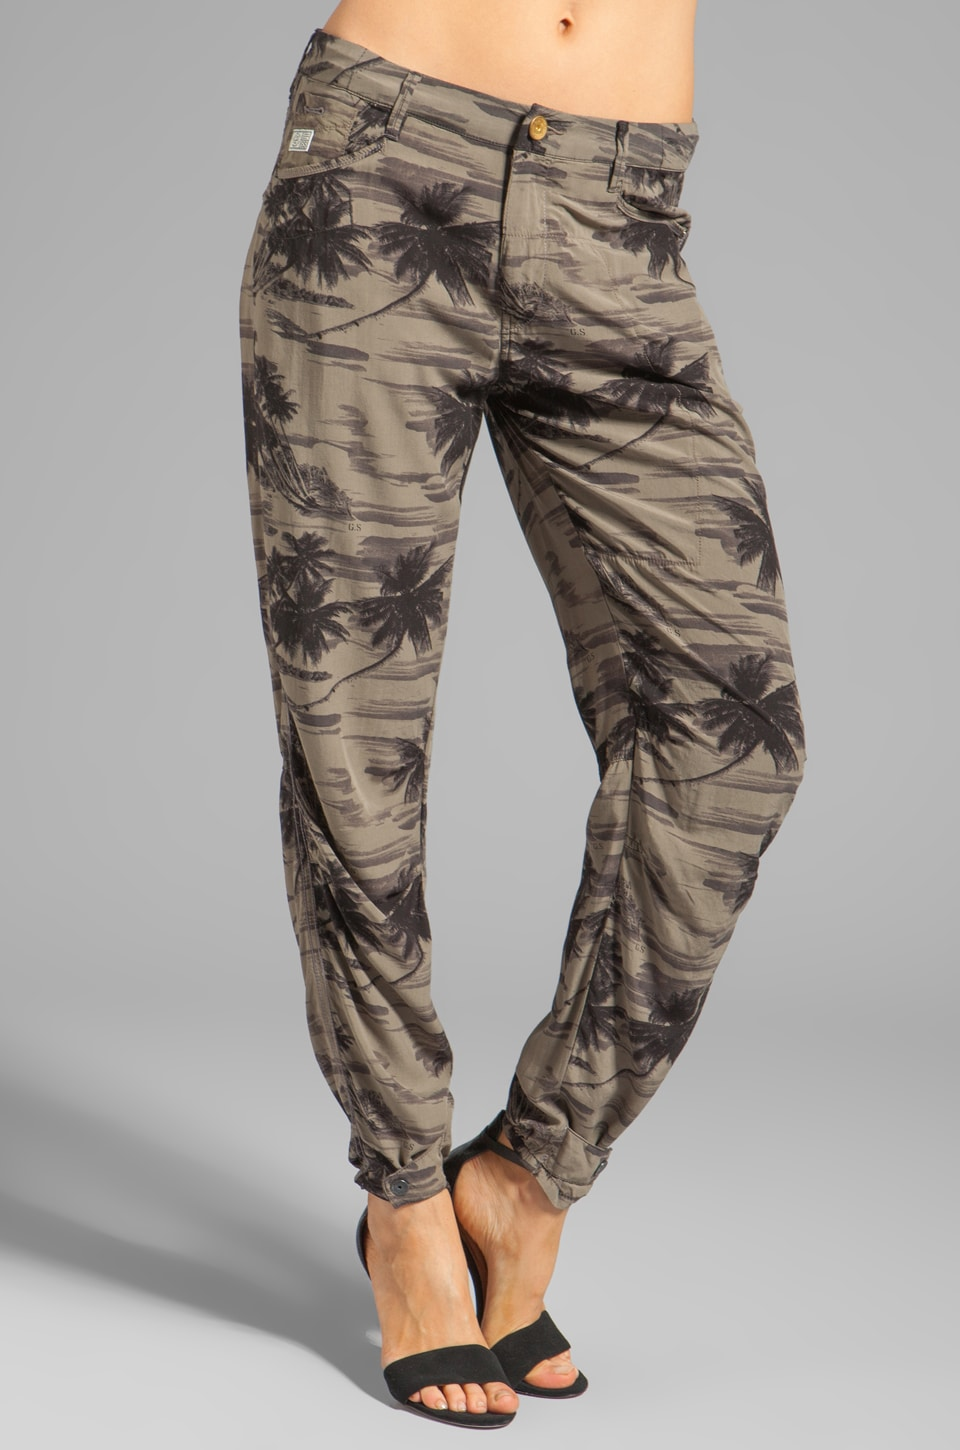 G-Star Beach Rovic Camo 3D Loose Pant in Magma